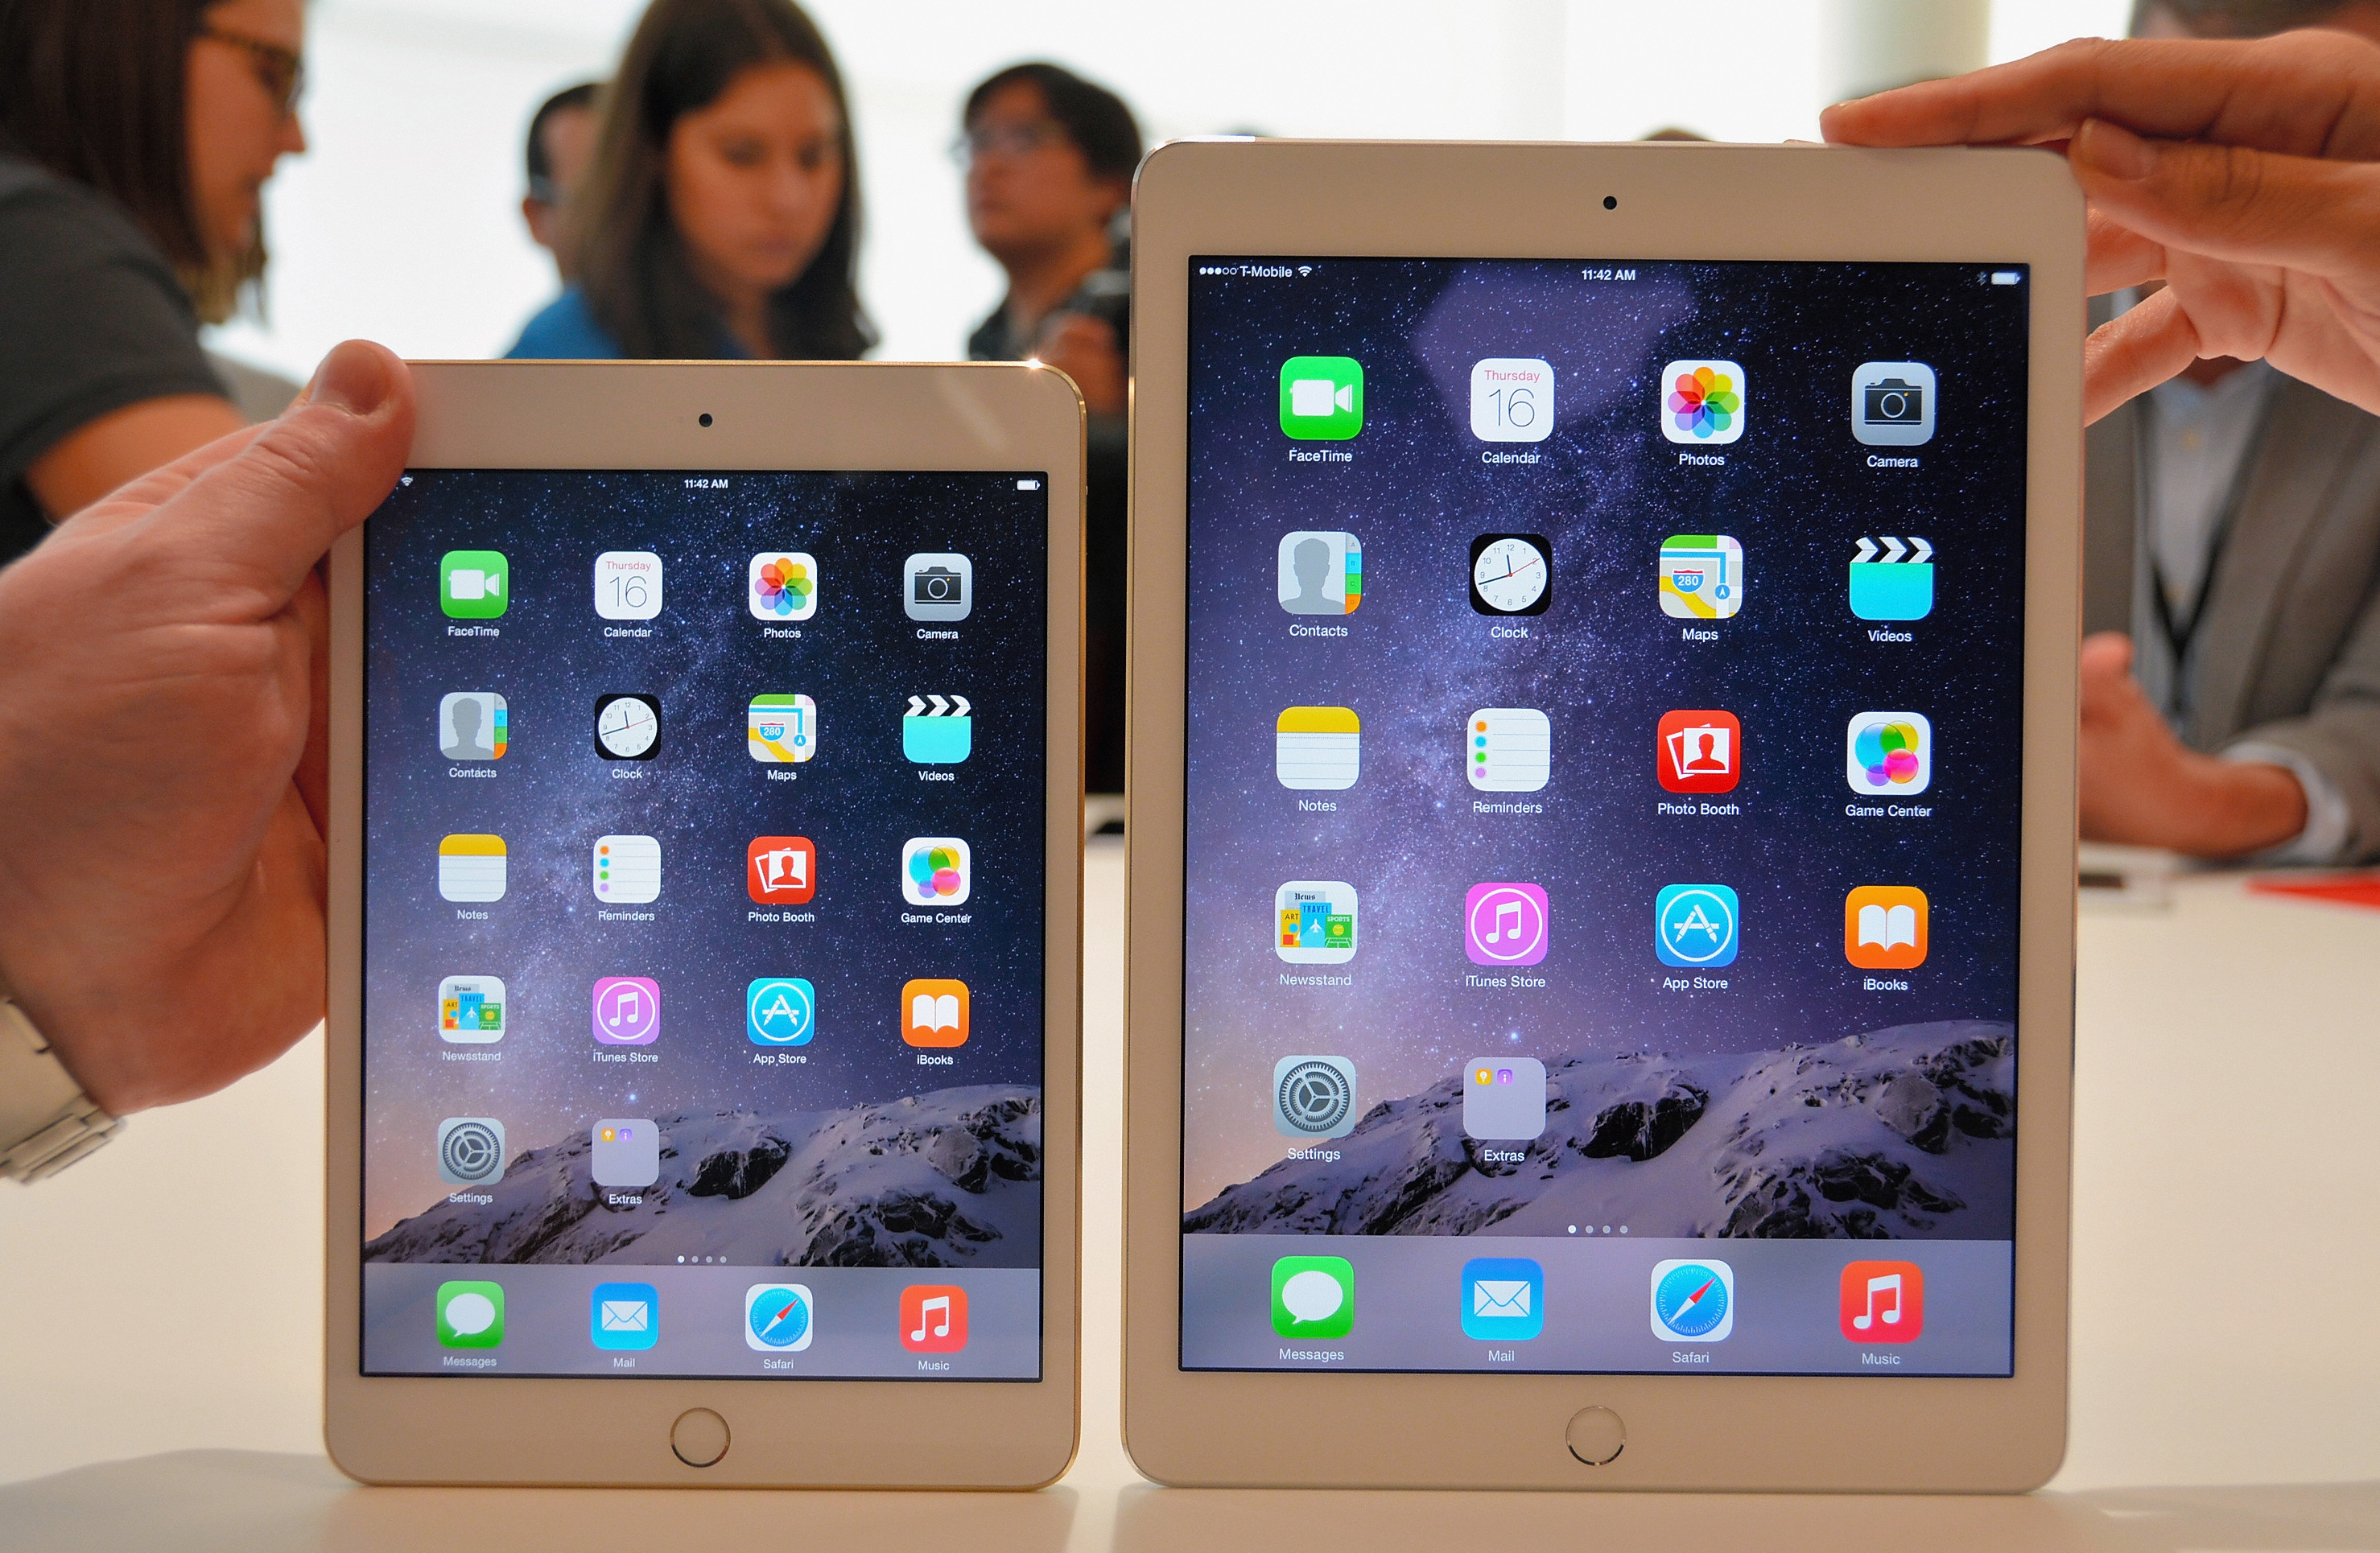 The new iPad Air 2 (R) and iPad Mini 3 are displayed during an Apple special event on October 16, 2014 in Cupertino, California. Apple unveiled the new iPad Air 2 and iPad Mini 3 tablets and the iMac with 5K retina display.